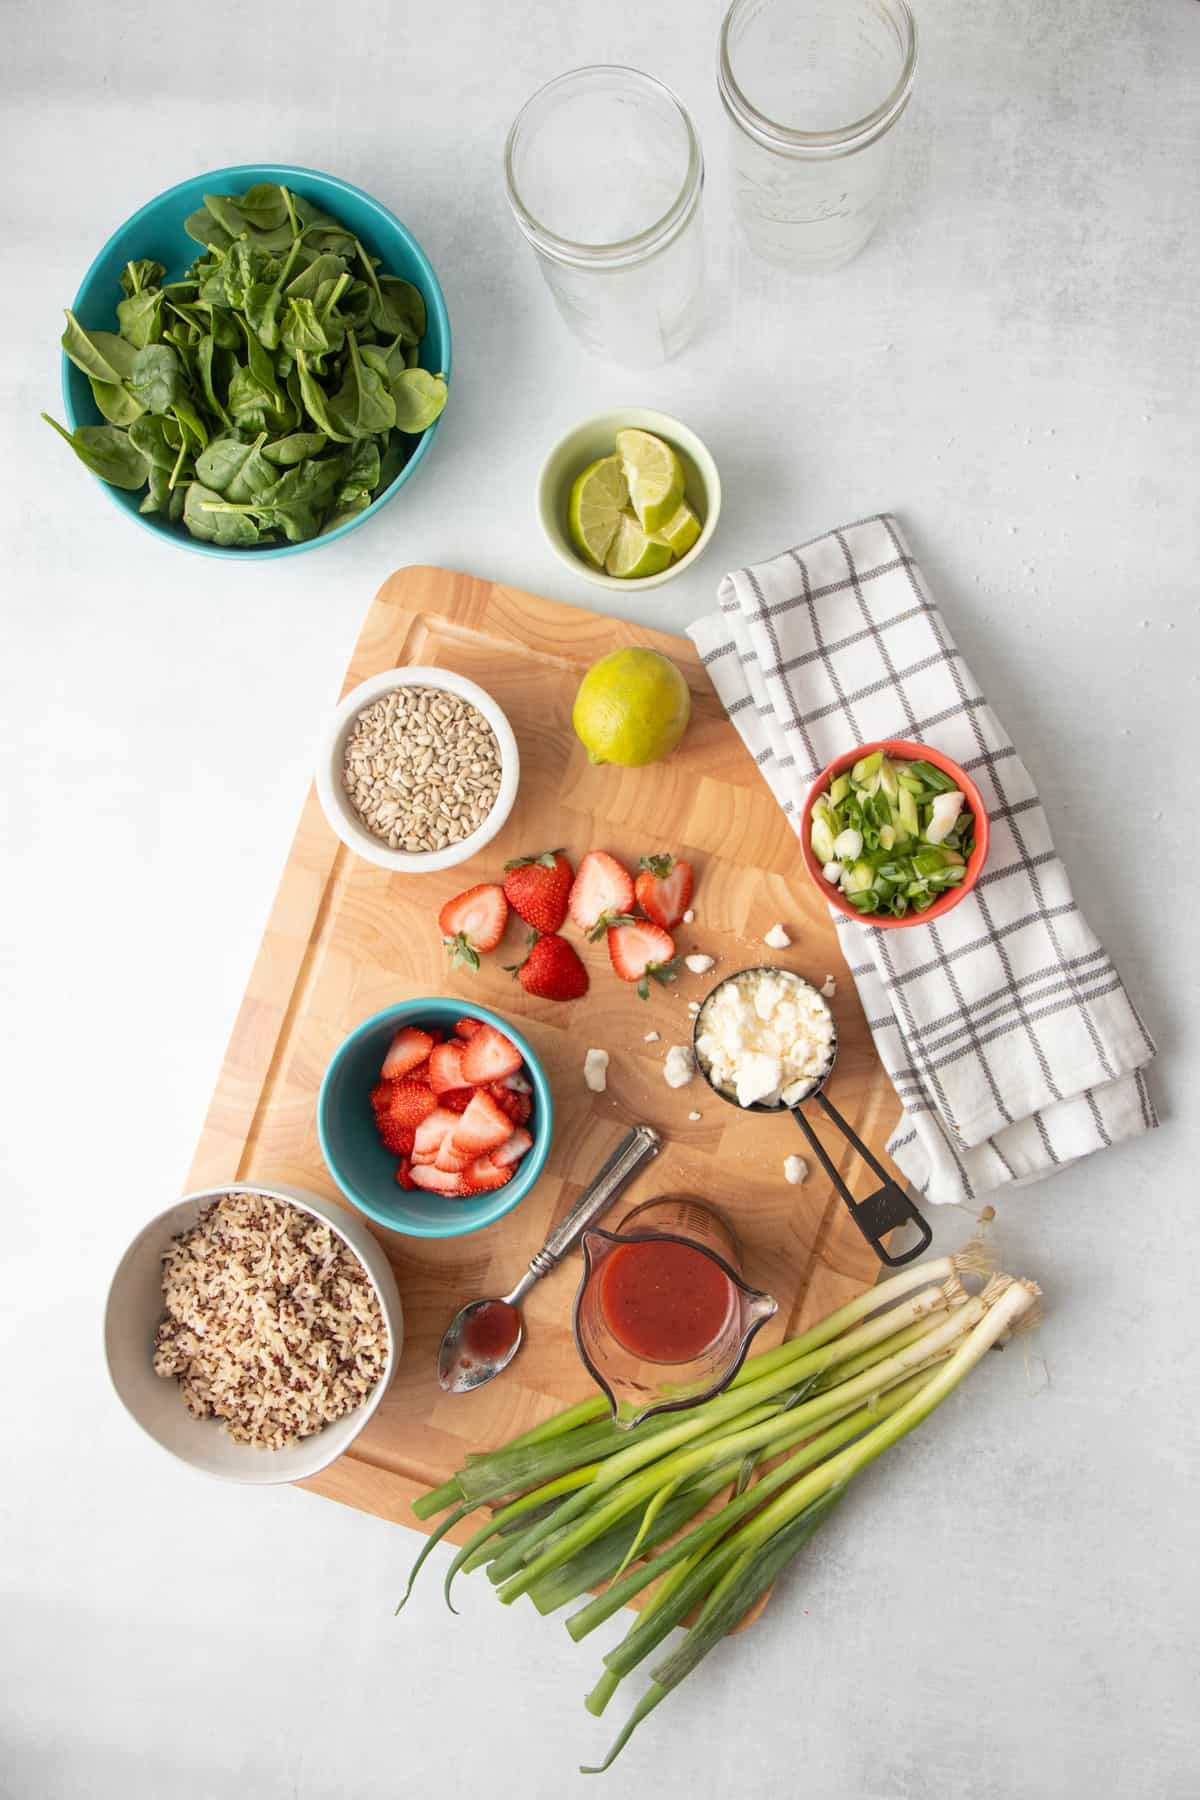 Ingredients for a strawberry spinach salad laid out in individual containers - strawberries, feta, green onions, spinach, lime slices, vinaigrette, and grains.